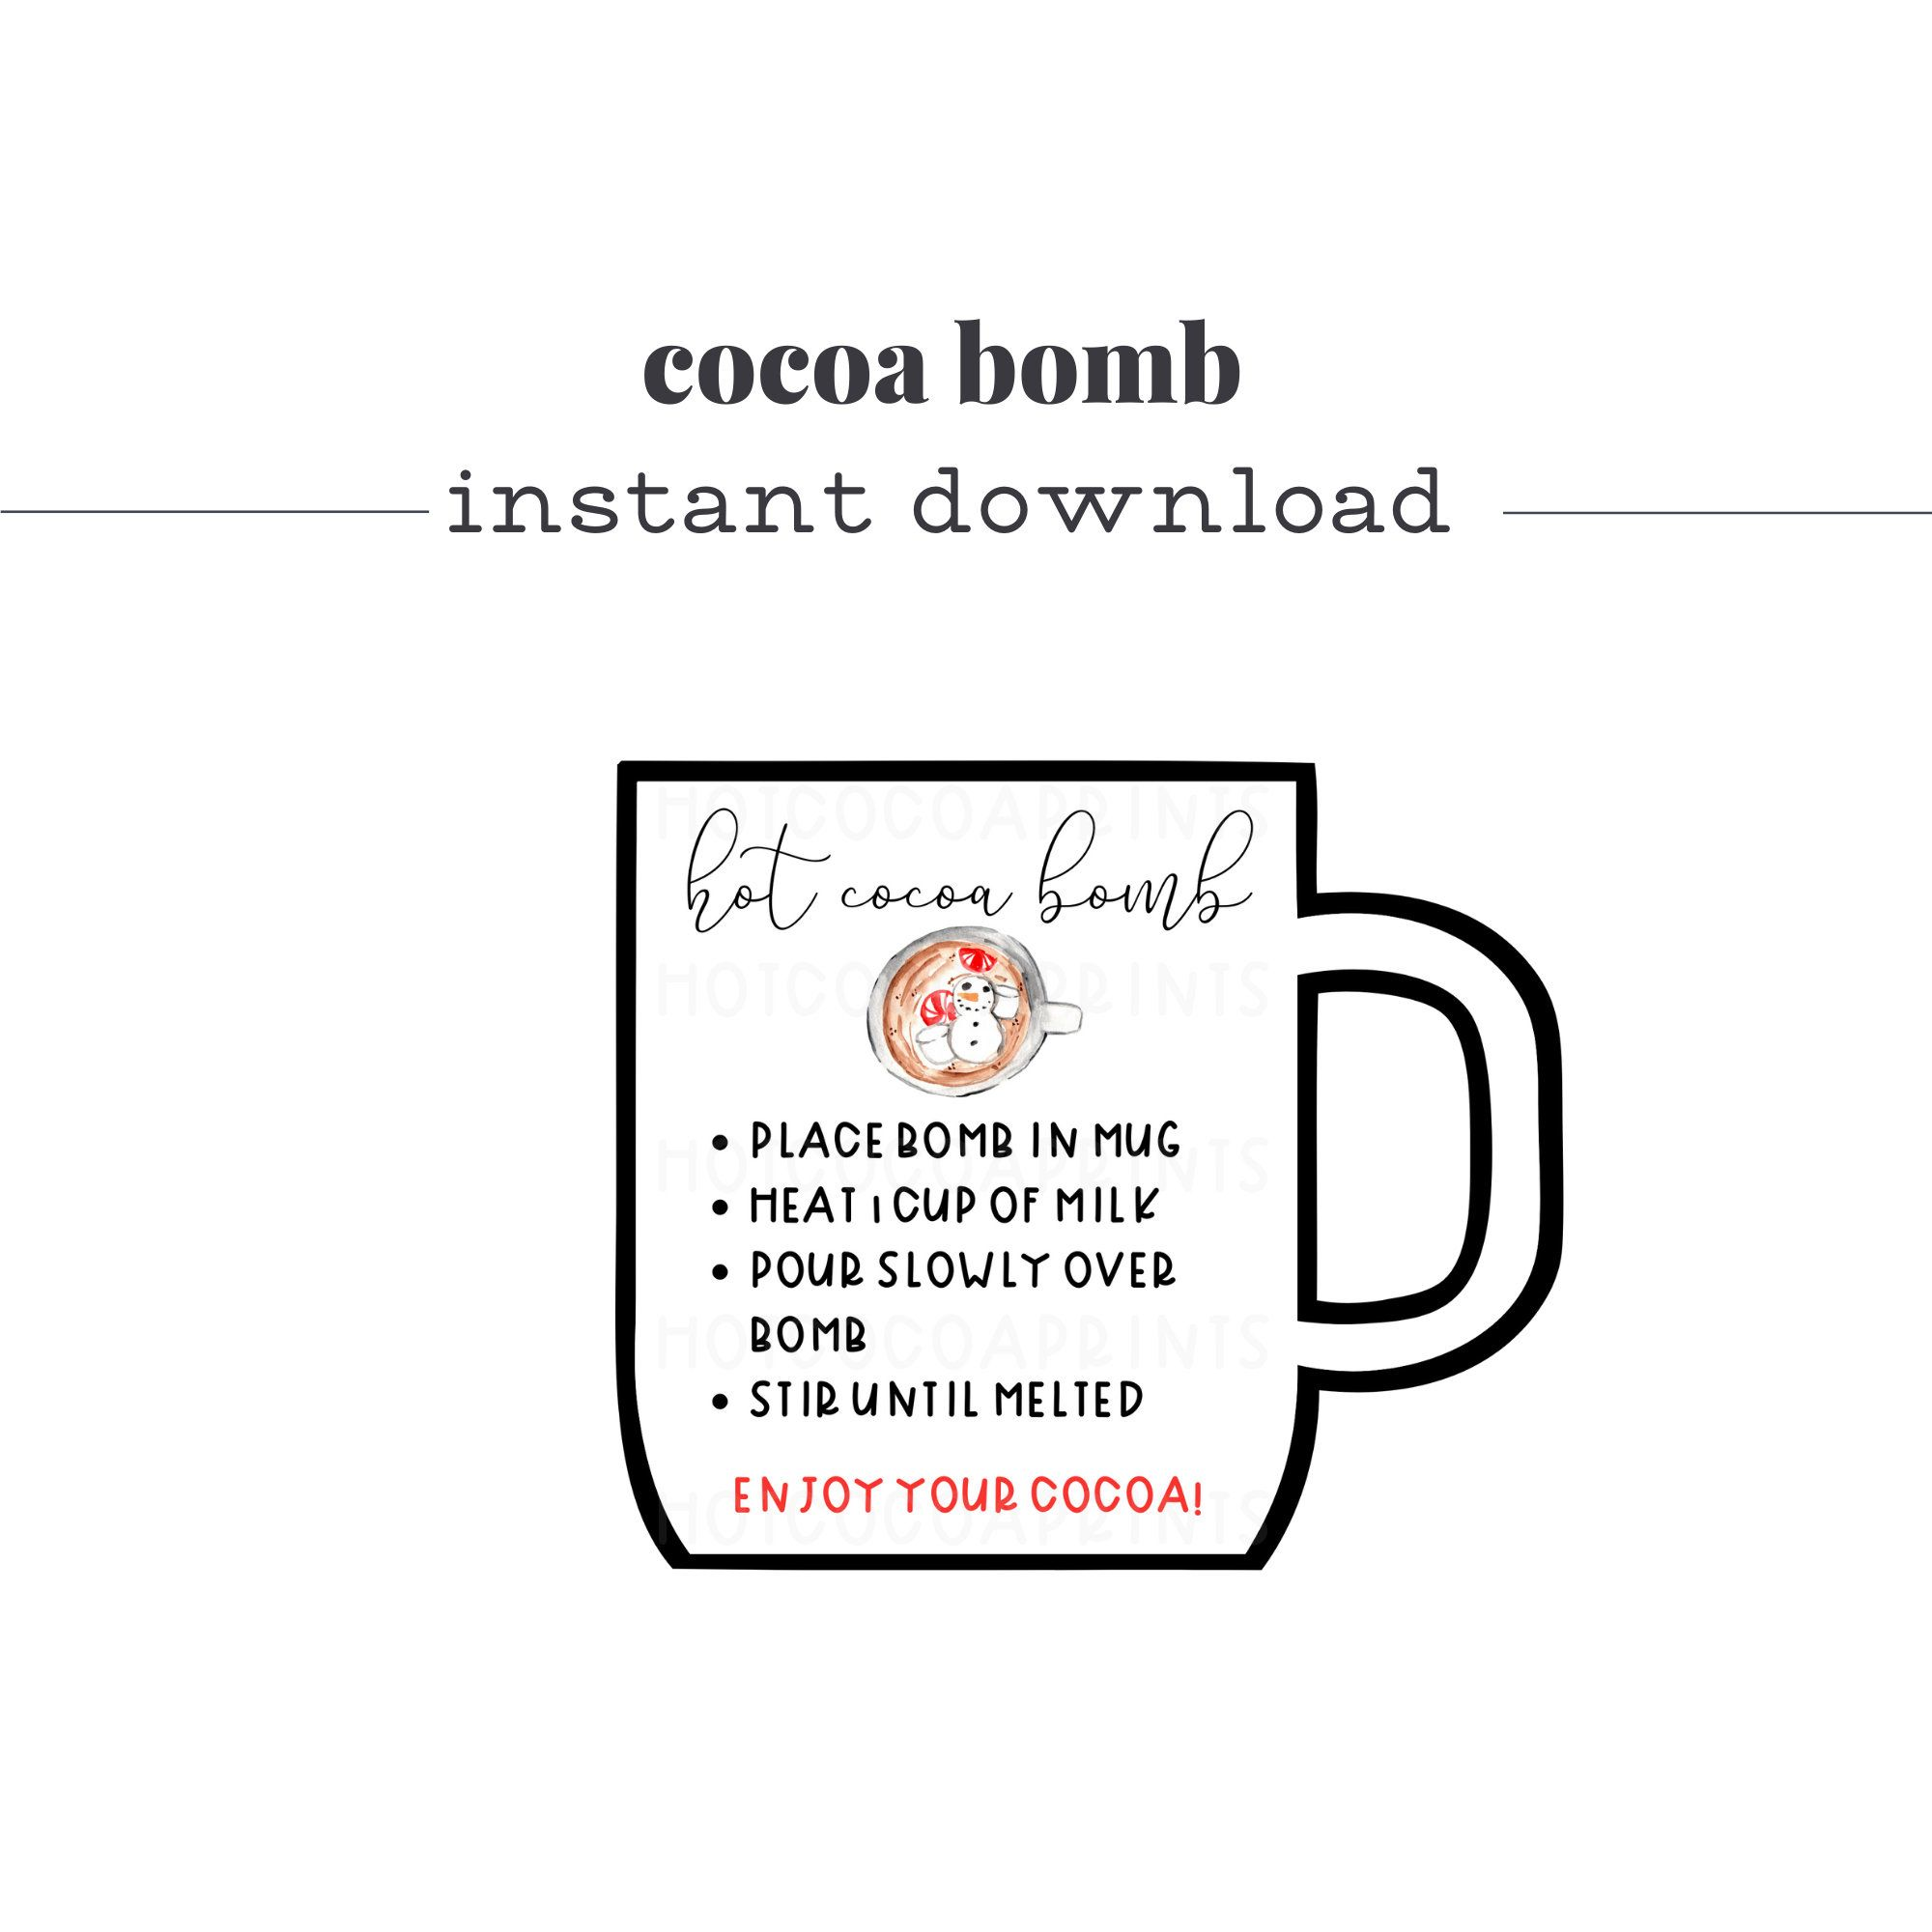 Hot Cocoa Tags For Cricut Chocolate Bomb Instructions Mug Etsy In 2021 Hot Chocolate Quotes Chocolate Bomb Thanksgiving Labels